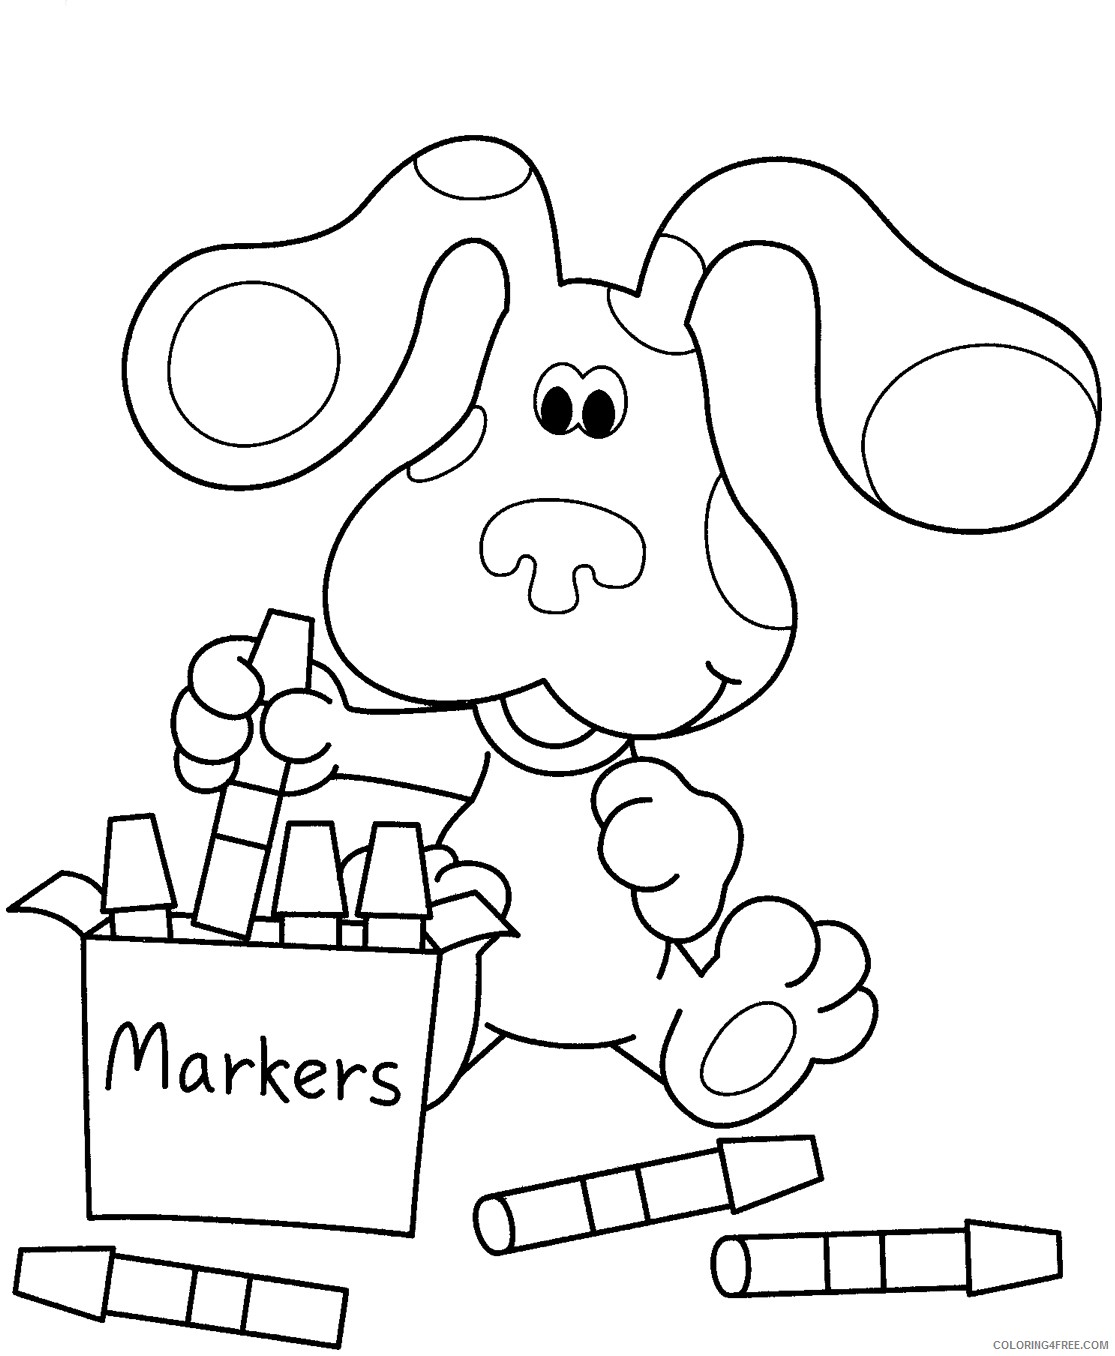 blues clues coloring pages to print Coloring4free